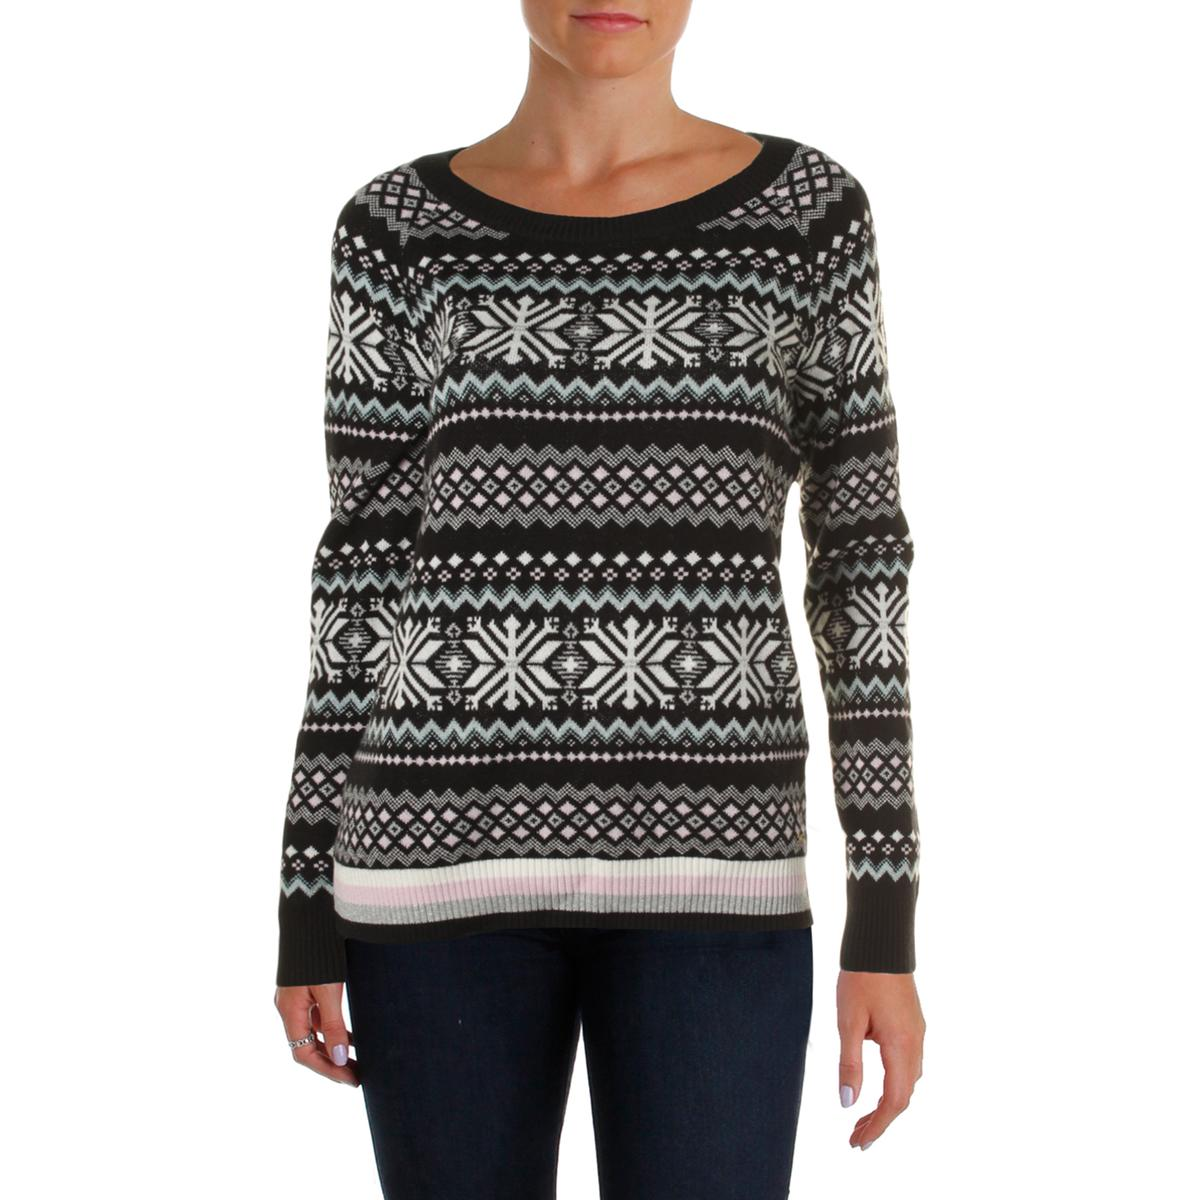 tommy hilfiger 1901 womens printed metallic crew neck pullover sweater top bhfo ebay. Black Bedroom Furniture Sets. Home Design Ideas